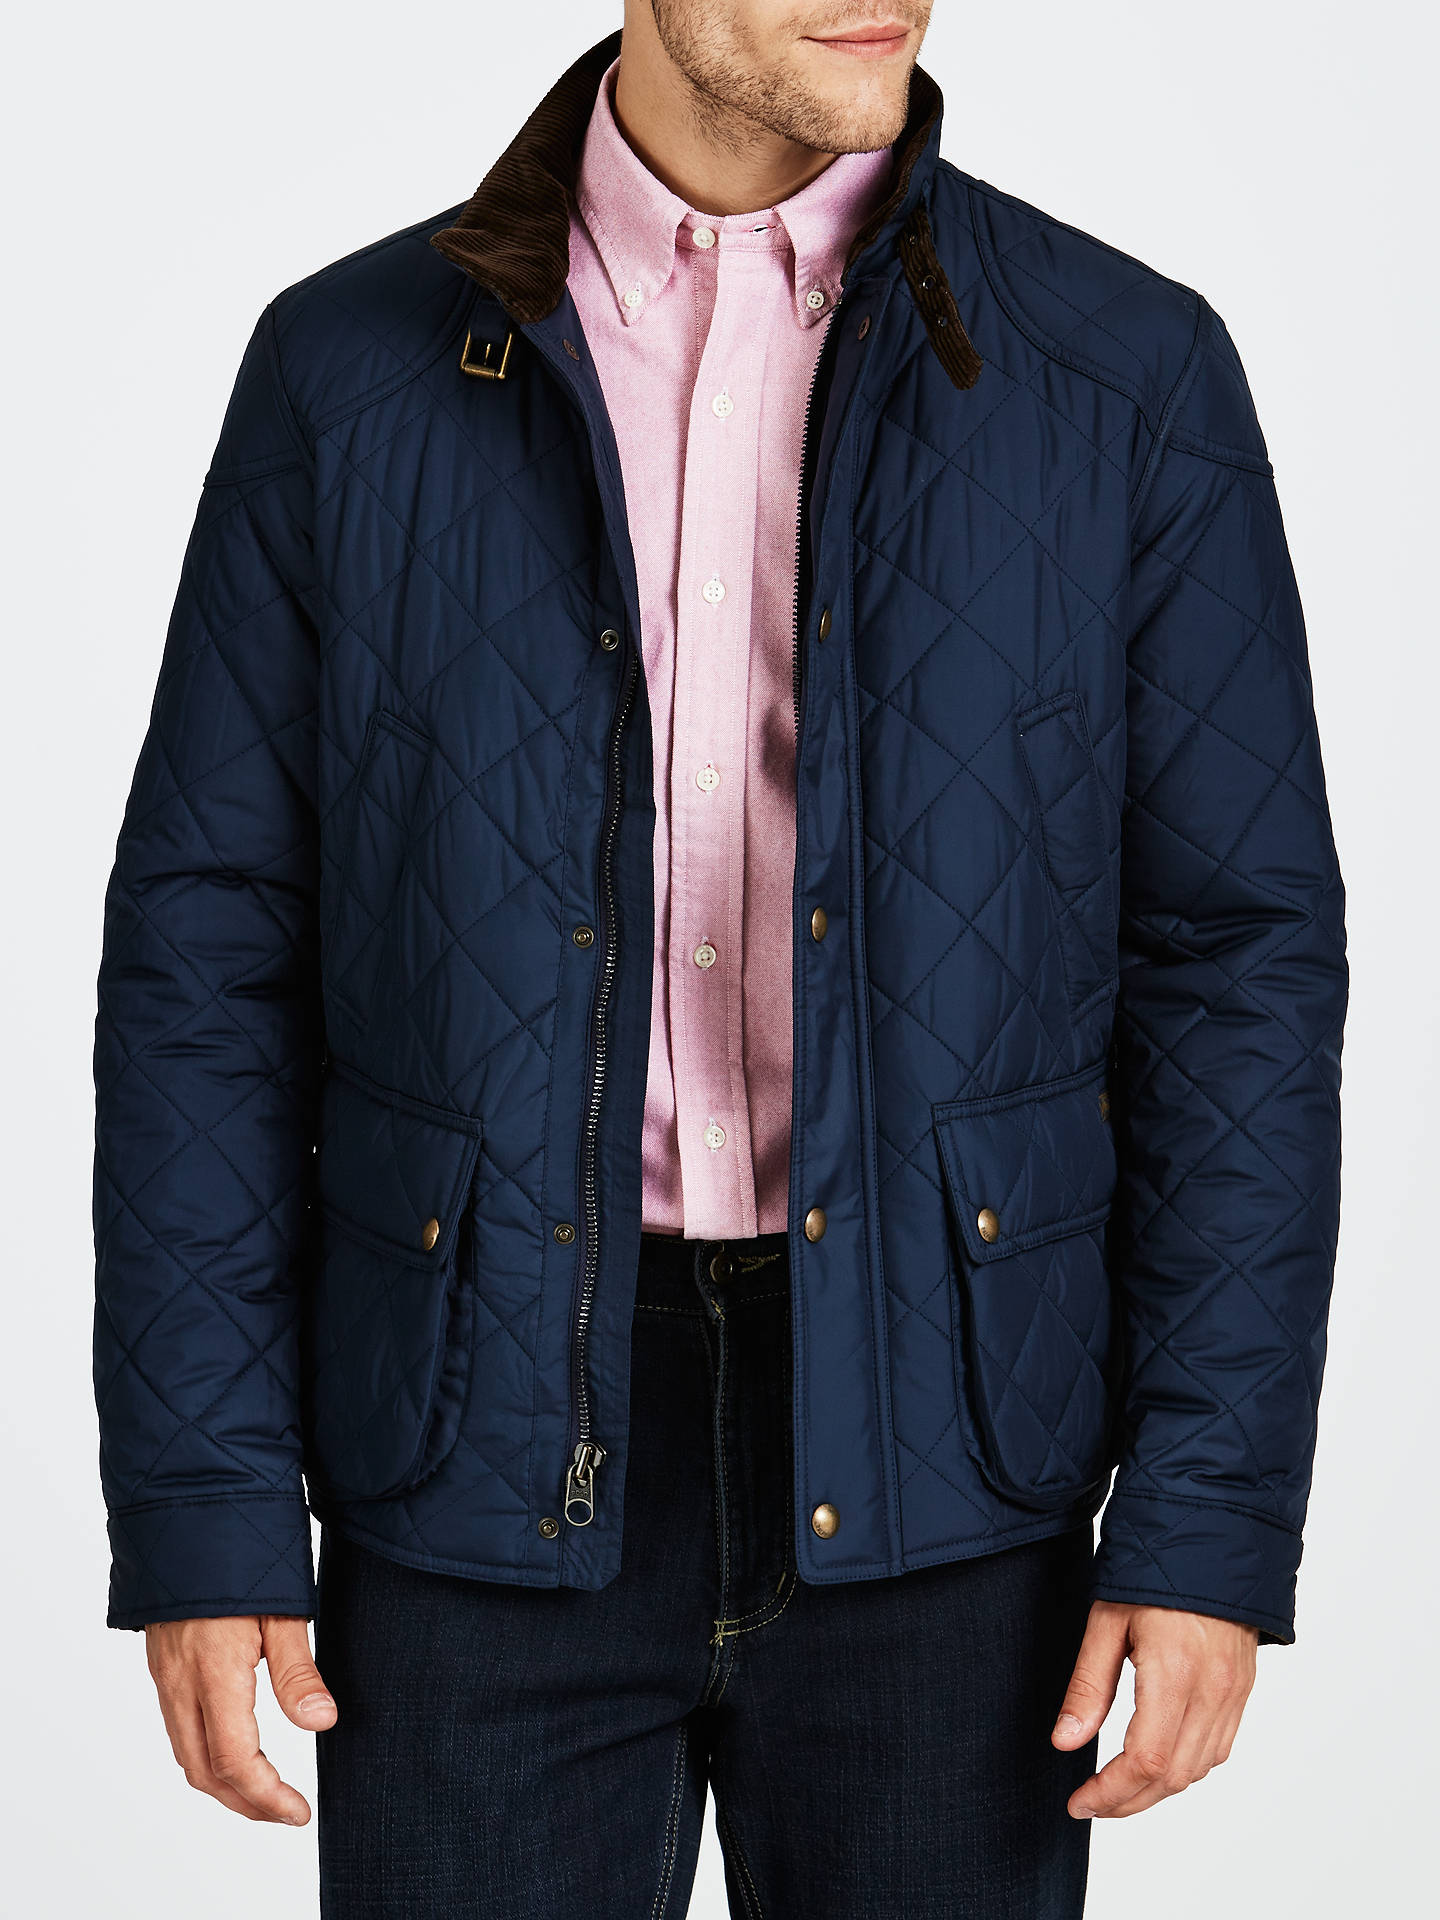 Polo Ralph Lauren Cadwell Quilted Bomber Jacket At John Lewis Partners